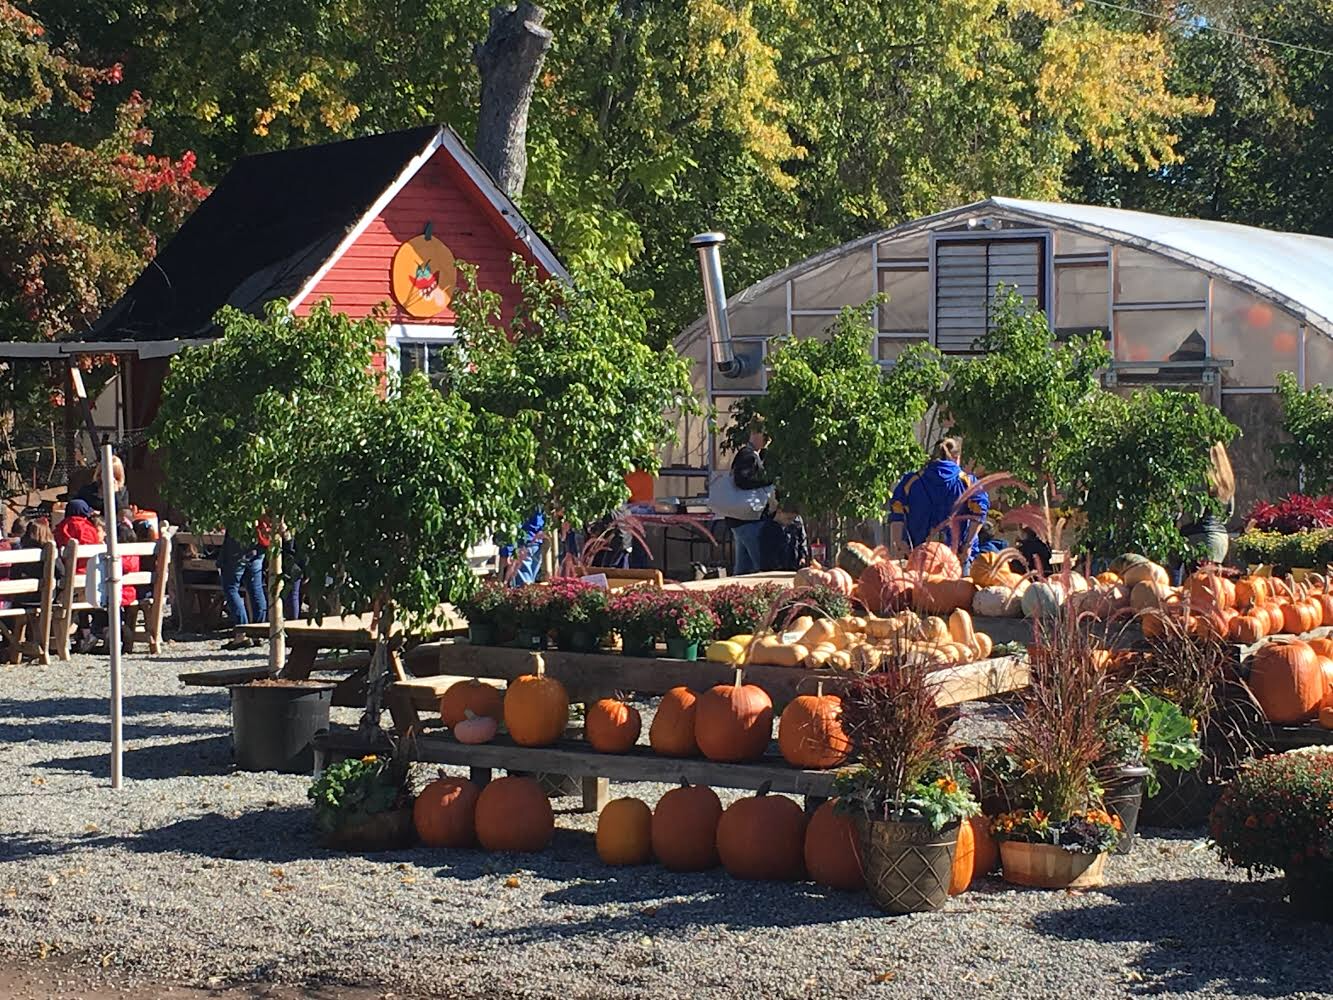 Mums, Pumpkins, Gourds, Deer Resistant Plants, and SO much more! Stop on down!